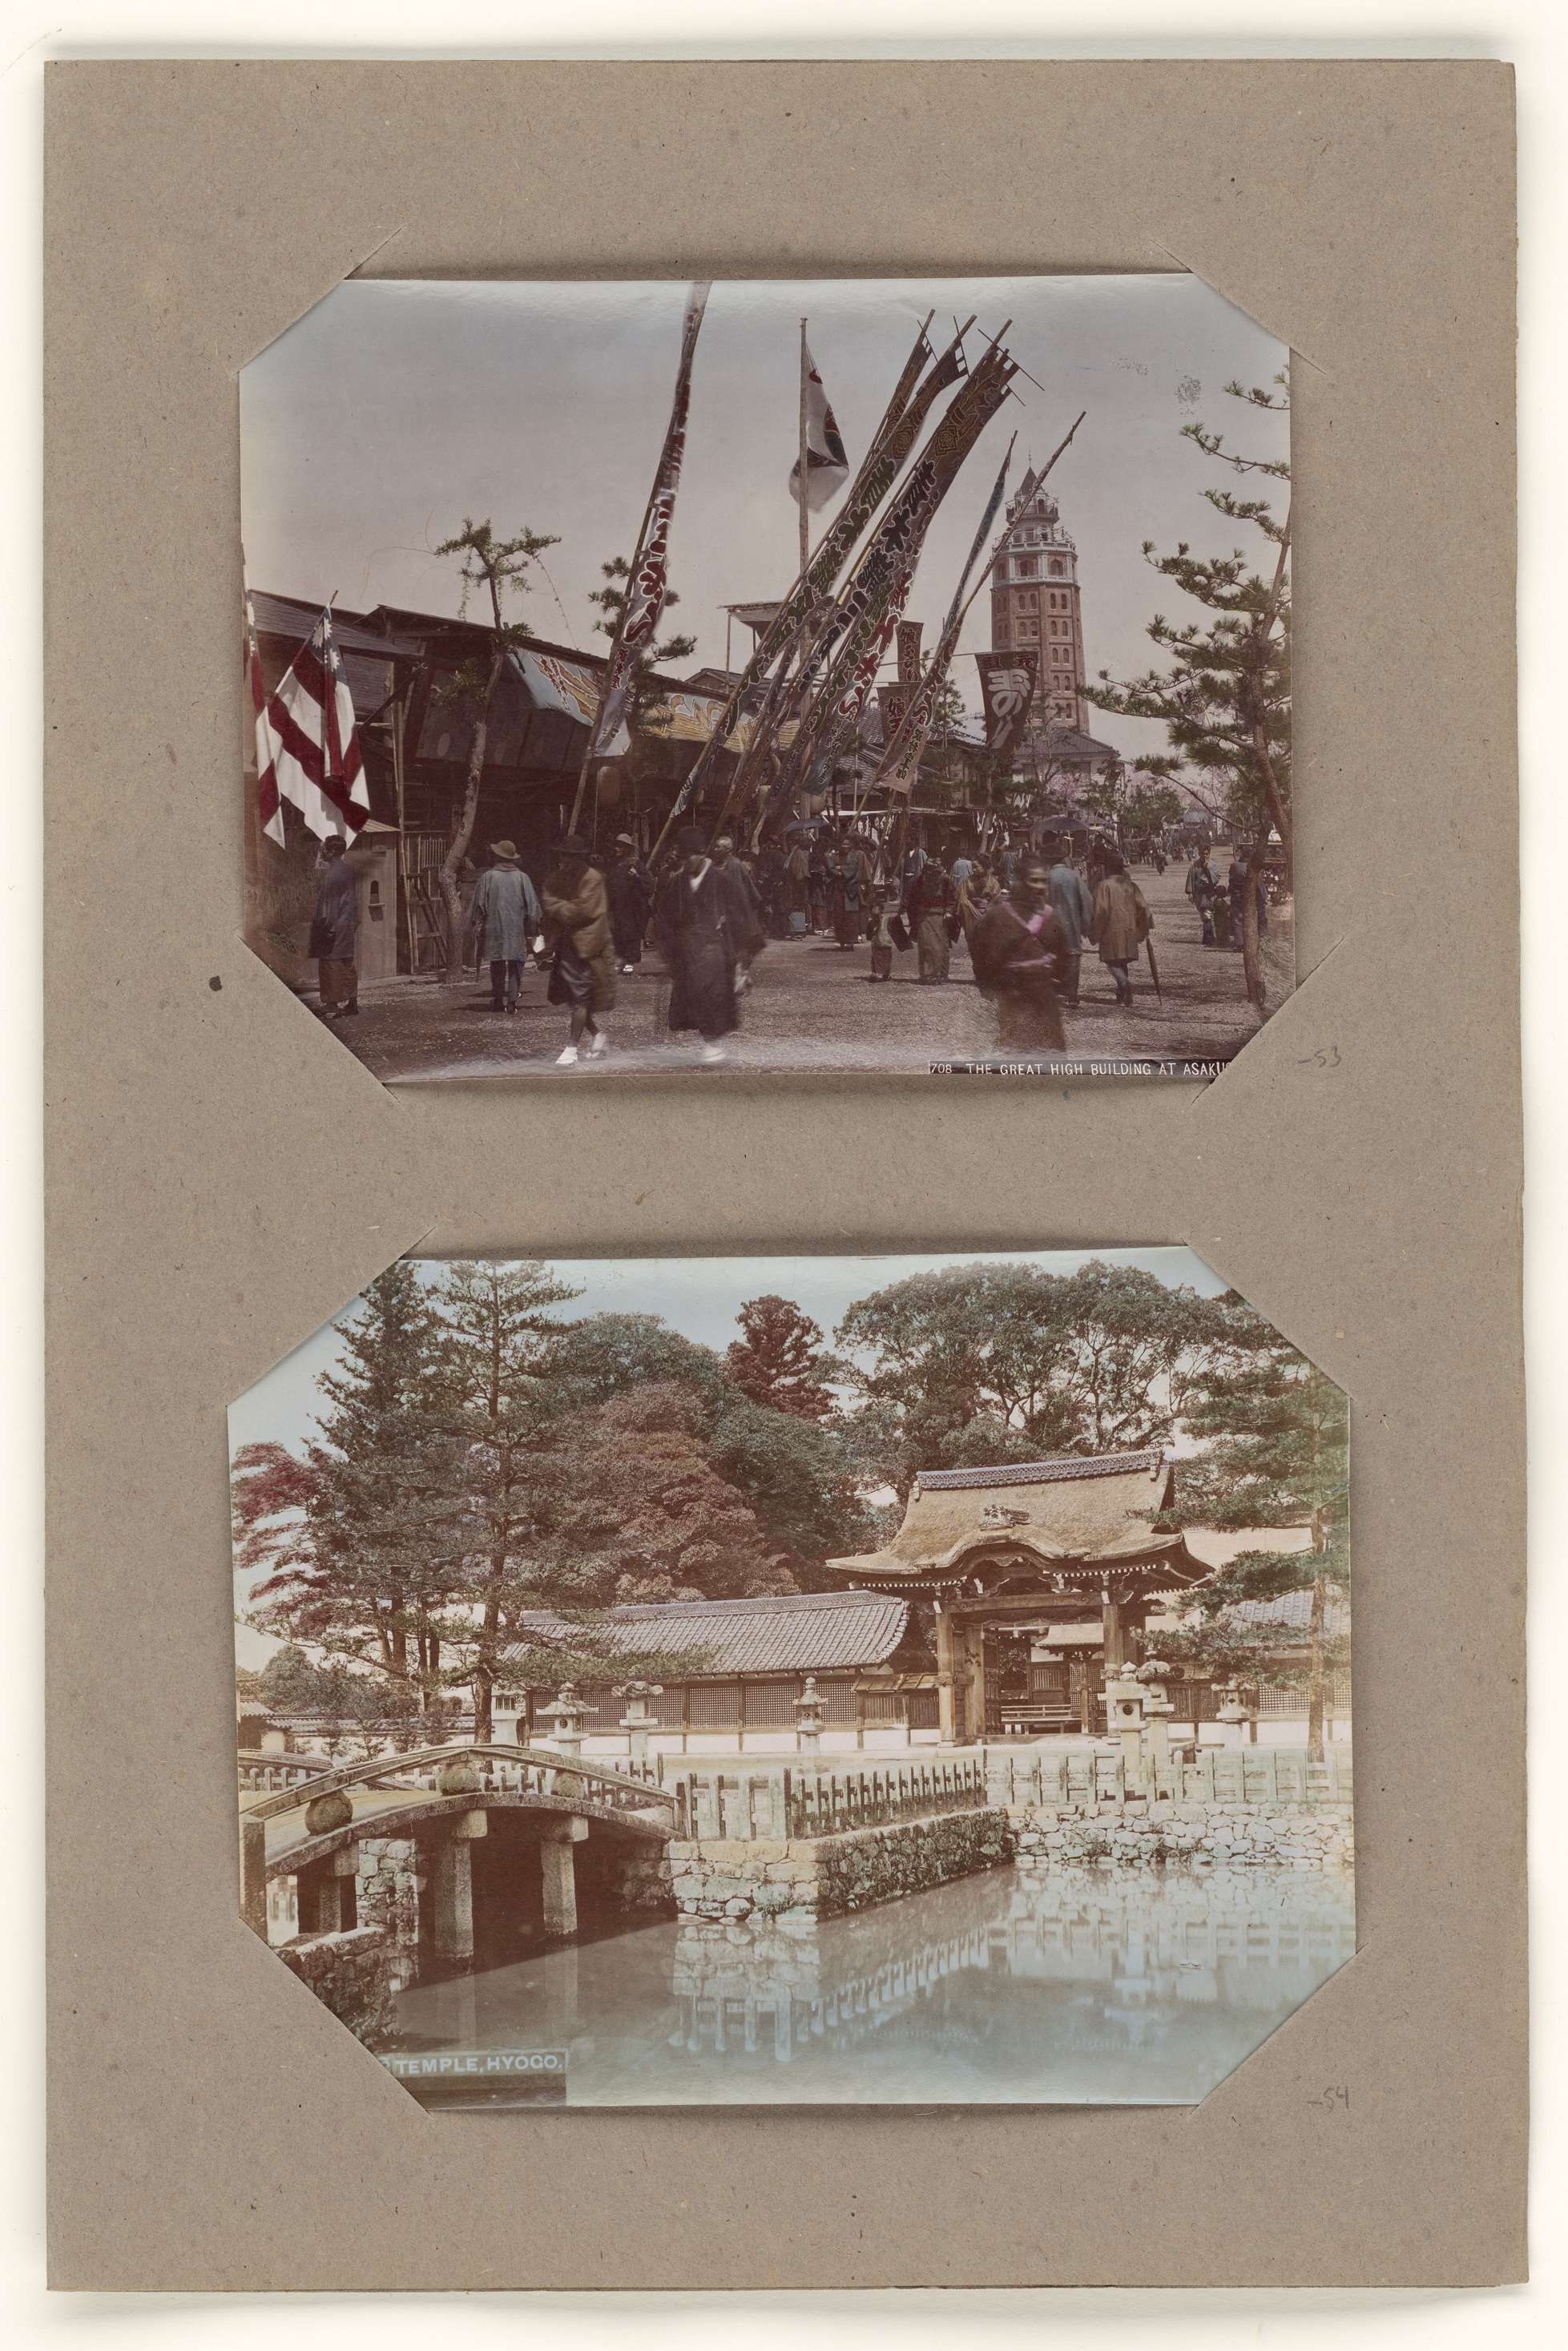 Anonymous | Tempel in Hyogo, Japan, Anonymous, Gijs Bosch Reitz, c. 1890 - c. 1903 | Tempel in Hyogo, Japan